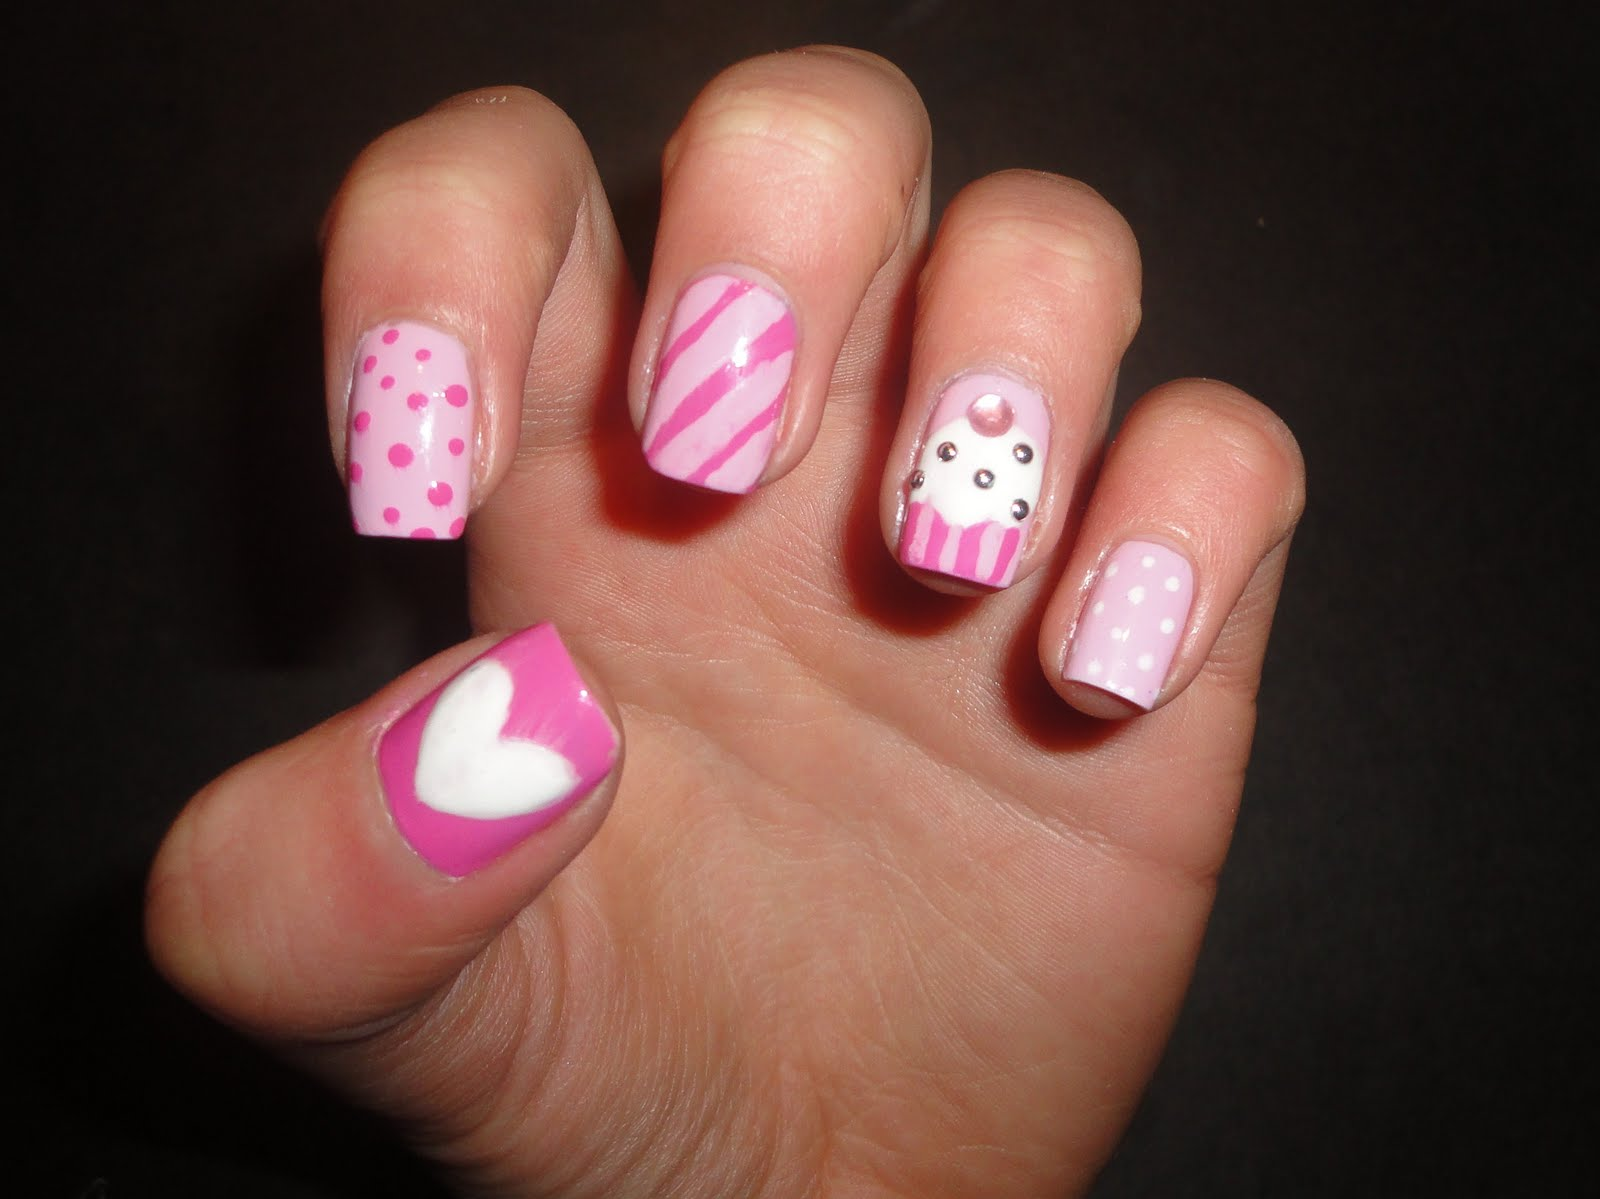 Cute Nail Designs For Kids | Nail Designs, Hair Styles, Tattoos and ...